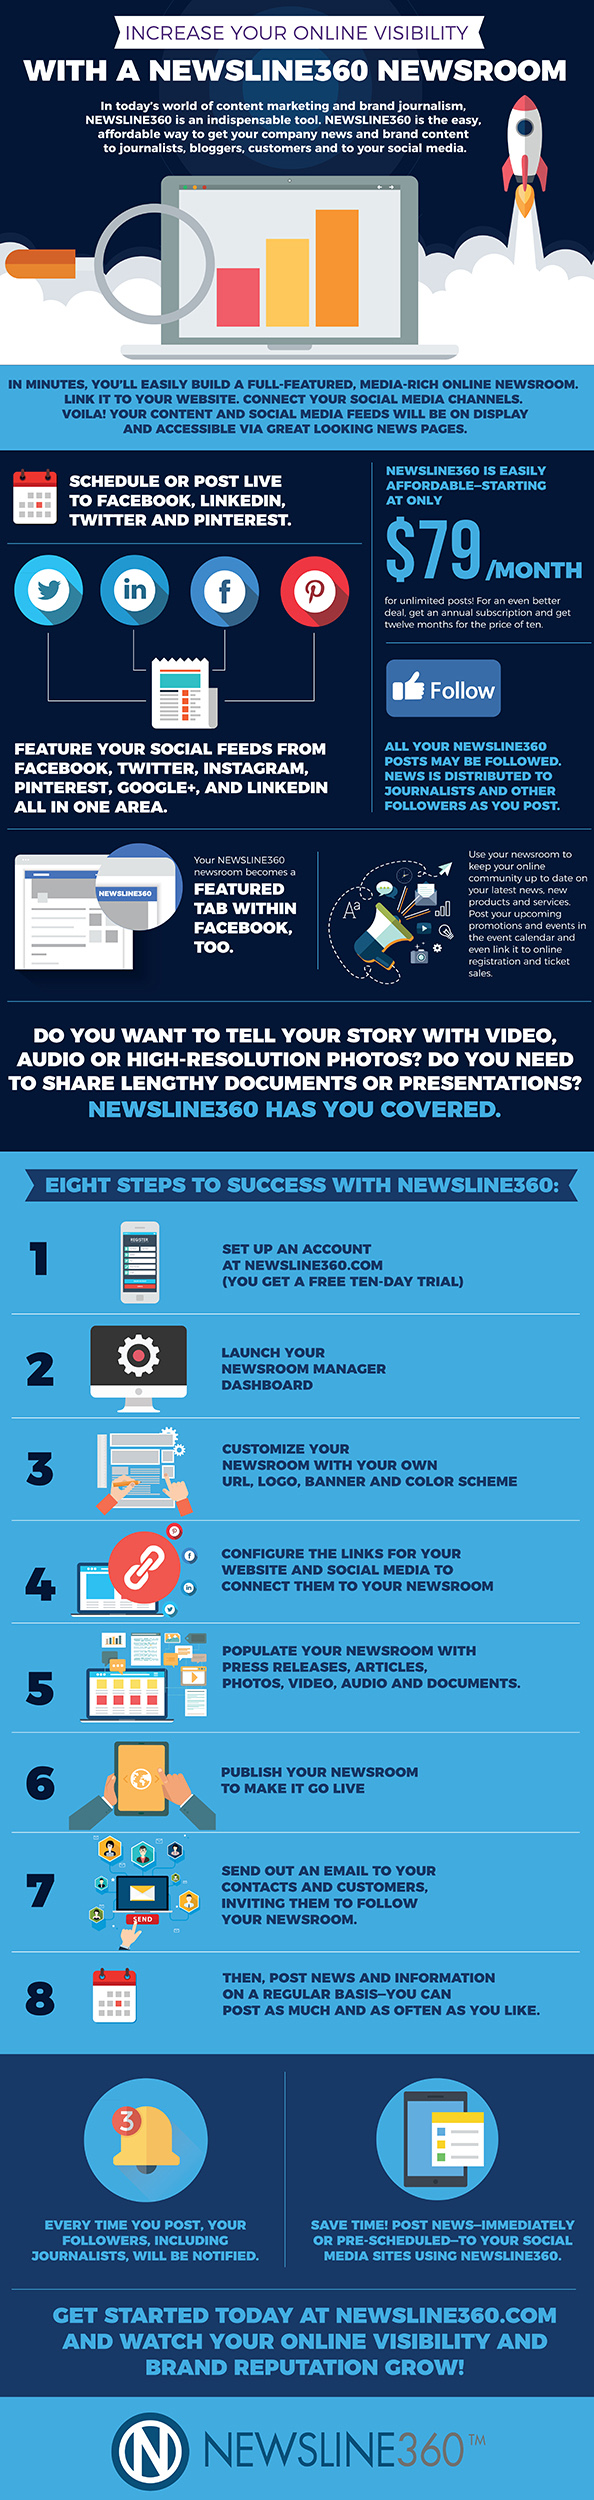 Setting Up Your Newsroom Made Easy